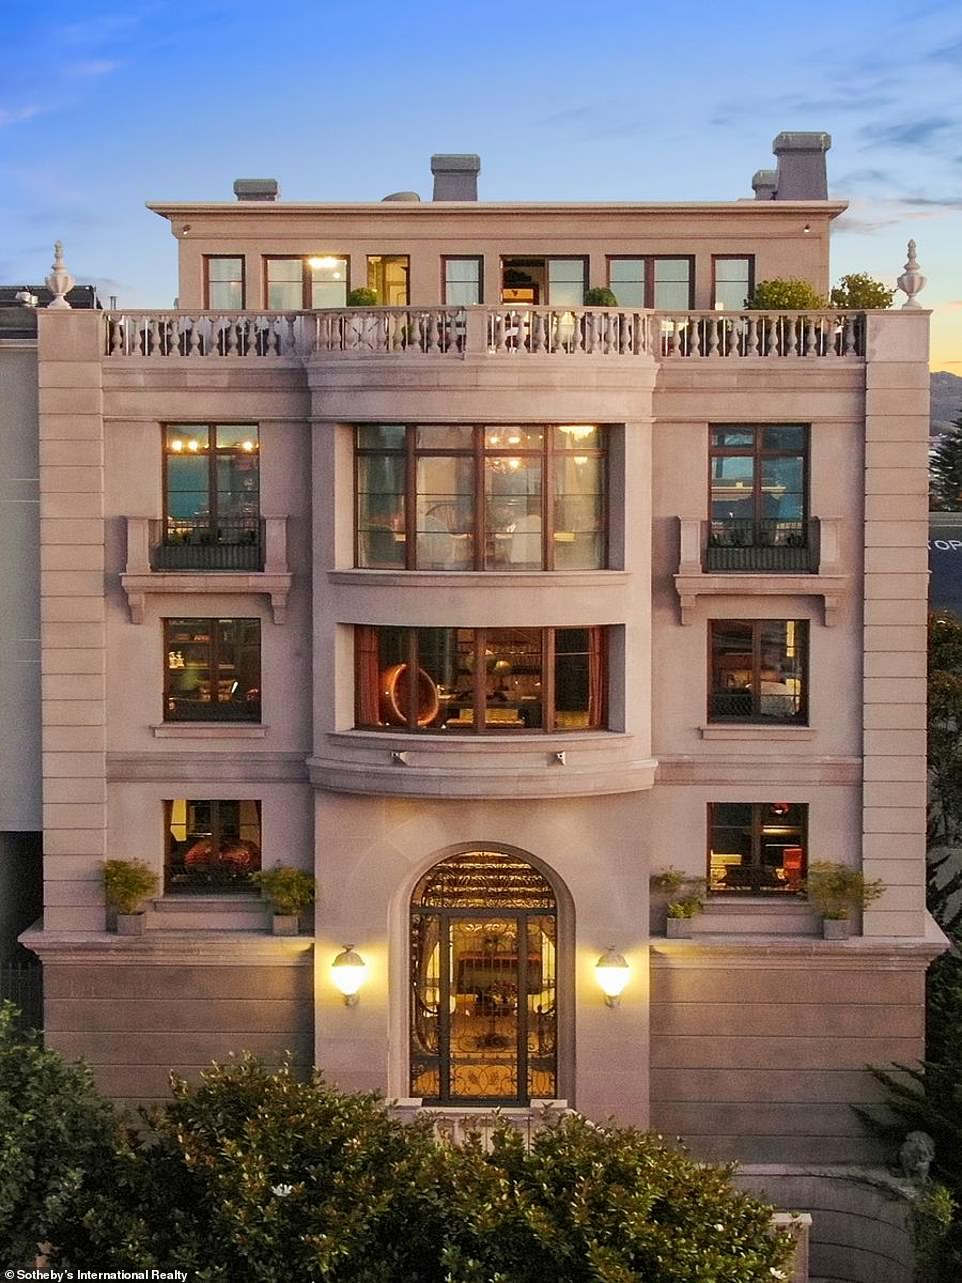 <p>The beautiful San Francisco house of Bebo's founders Michael and Xochi Birch is on the market for $39 million.</p><p>Birches bought a property on a street called Billionaire's Row in Pacific Heights for $29 million in 2008, after selling their social networking site Bebo to AOL.</p><p>The six-bedroom home features a library, a British pub, and a spa with views of the Golden Gate Bridge.</p><p>The house, located at 2799 Broadway, needs little improvement as construction has recently been carried out.</p><p>The beautiful San Francisco home of Bebo creators Michael and Xochi Birch is on the eye-watering $39 million markets, and even comes complete with its own bar and library.&nbsp;</p><p>The Birches bought an 11,600-square-foot manor-style home on a street nicknamed Billionaire's Row in Pacific Heights for $29 million in 2008, after selling their social networking site Bebo to AOL for $850 million.</p><p>If the property sold for its asking price, it would have tied the record for the most expensive home ever purchased in San Francisco. The $39 million records were set last year after the purchase of a nearby home by venture capitalist Matt Cohler.</p><p>The multi-story house is set high above the city of San Francisco and the ocean, providing views across the Golden Gate Bridge to the Oakland Hills.</p><p>Guests at the stunning stack are welcomed by a dramatic double staircase featuring zebra-printed carpeting and an eclectic 18th-century portrait gallery mixed with contemporary art. It also features a study of the British Union Jack mosaic emblazoned in the fireplace, courtesy of Xochi Birch, who is British.</p><p>The house also has a pub with an old bar, converted from a decommissioned British tavern. Most recently, the pair hired architect Eric Cohler to refurbish the kitchen and create a family room with a more colorful style.</p><p>The top floor is where you can find apartments, including a master suite with a working fireplace and a walk-out terrace, which al